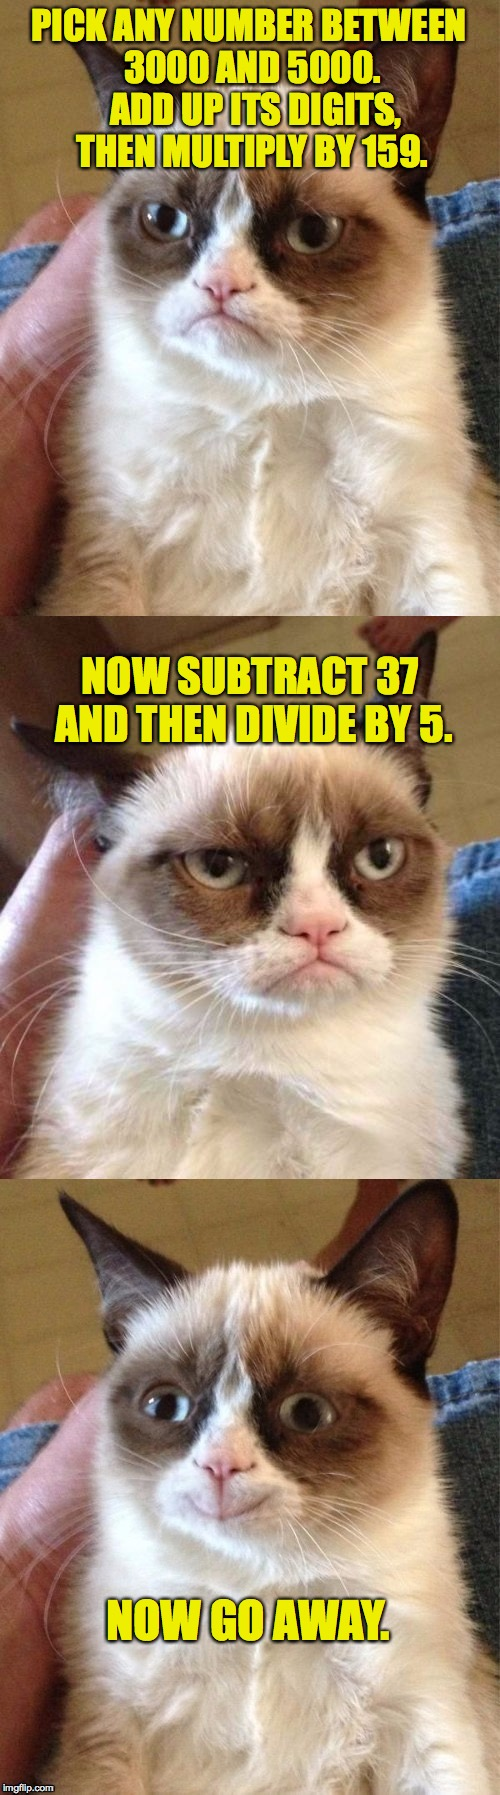 Grumpy Cat's Sunday Math Challenge! | PICK ANY NUMBER BETWEEN 3000 AND 5000.  ADD UP ITS DIGITS, THEN MULTIPLY BY 159. NOW GO AWAY. NOW SUBTRACT 37 AND THEN DIVIDE BY 5. | image tagged in bad pun grumpy cat,memes,math,grumpy cat | made w/ Imgflip meme maker